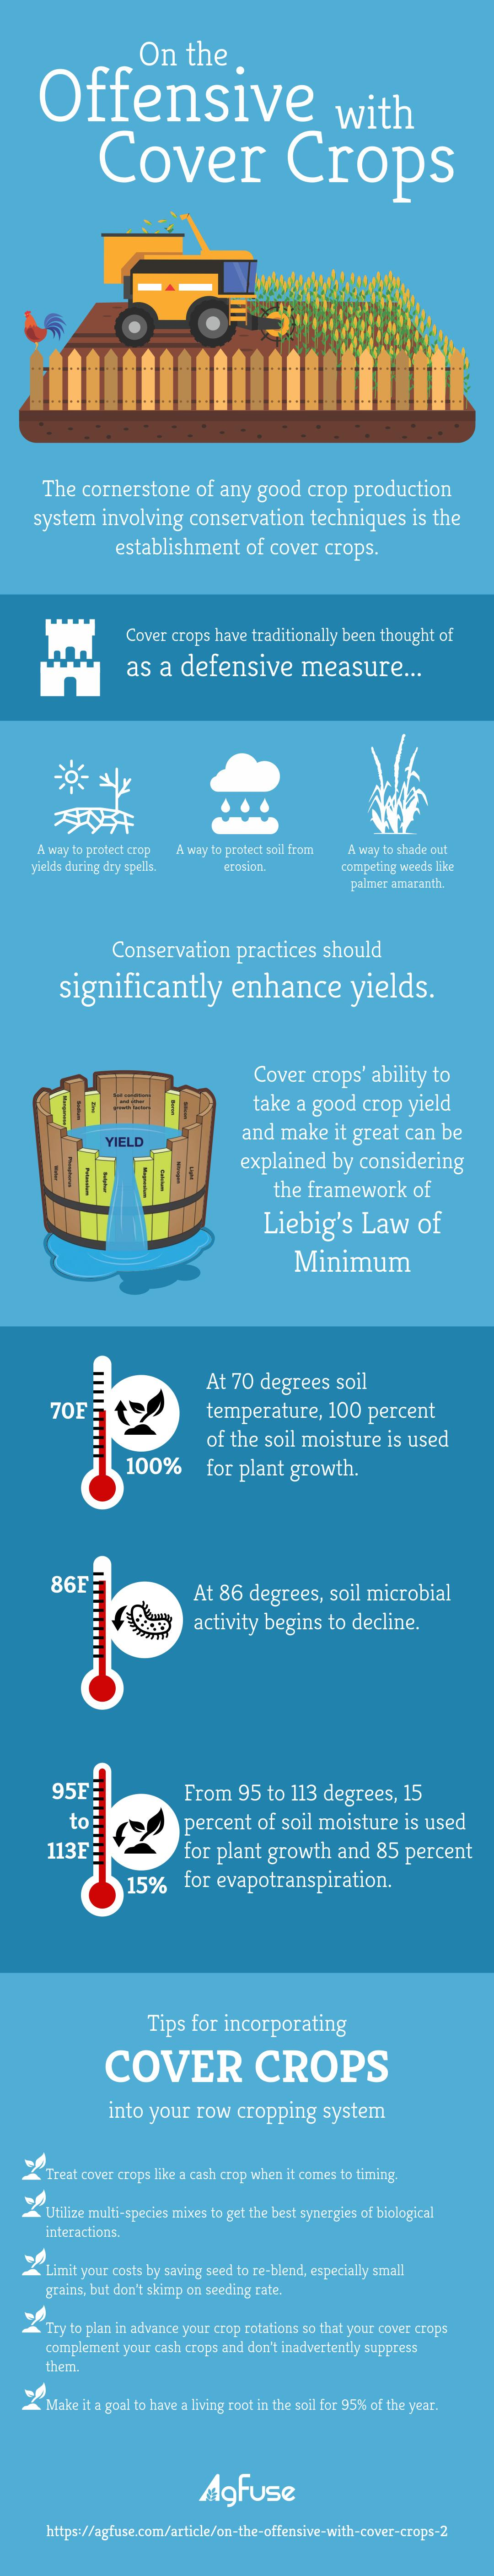 On the Offensive with Cover Crops Infographic